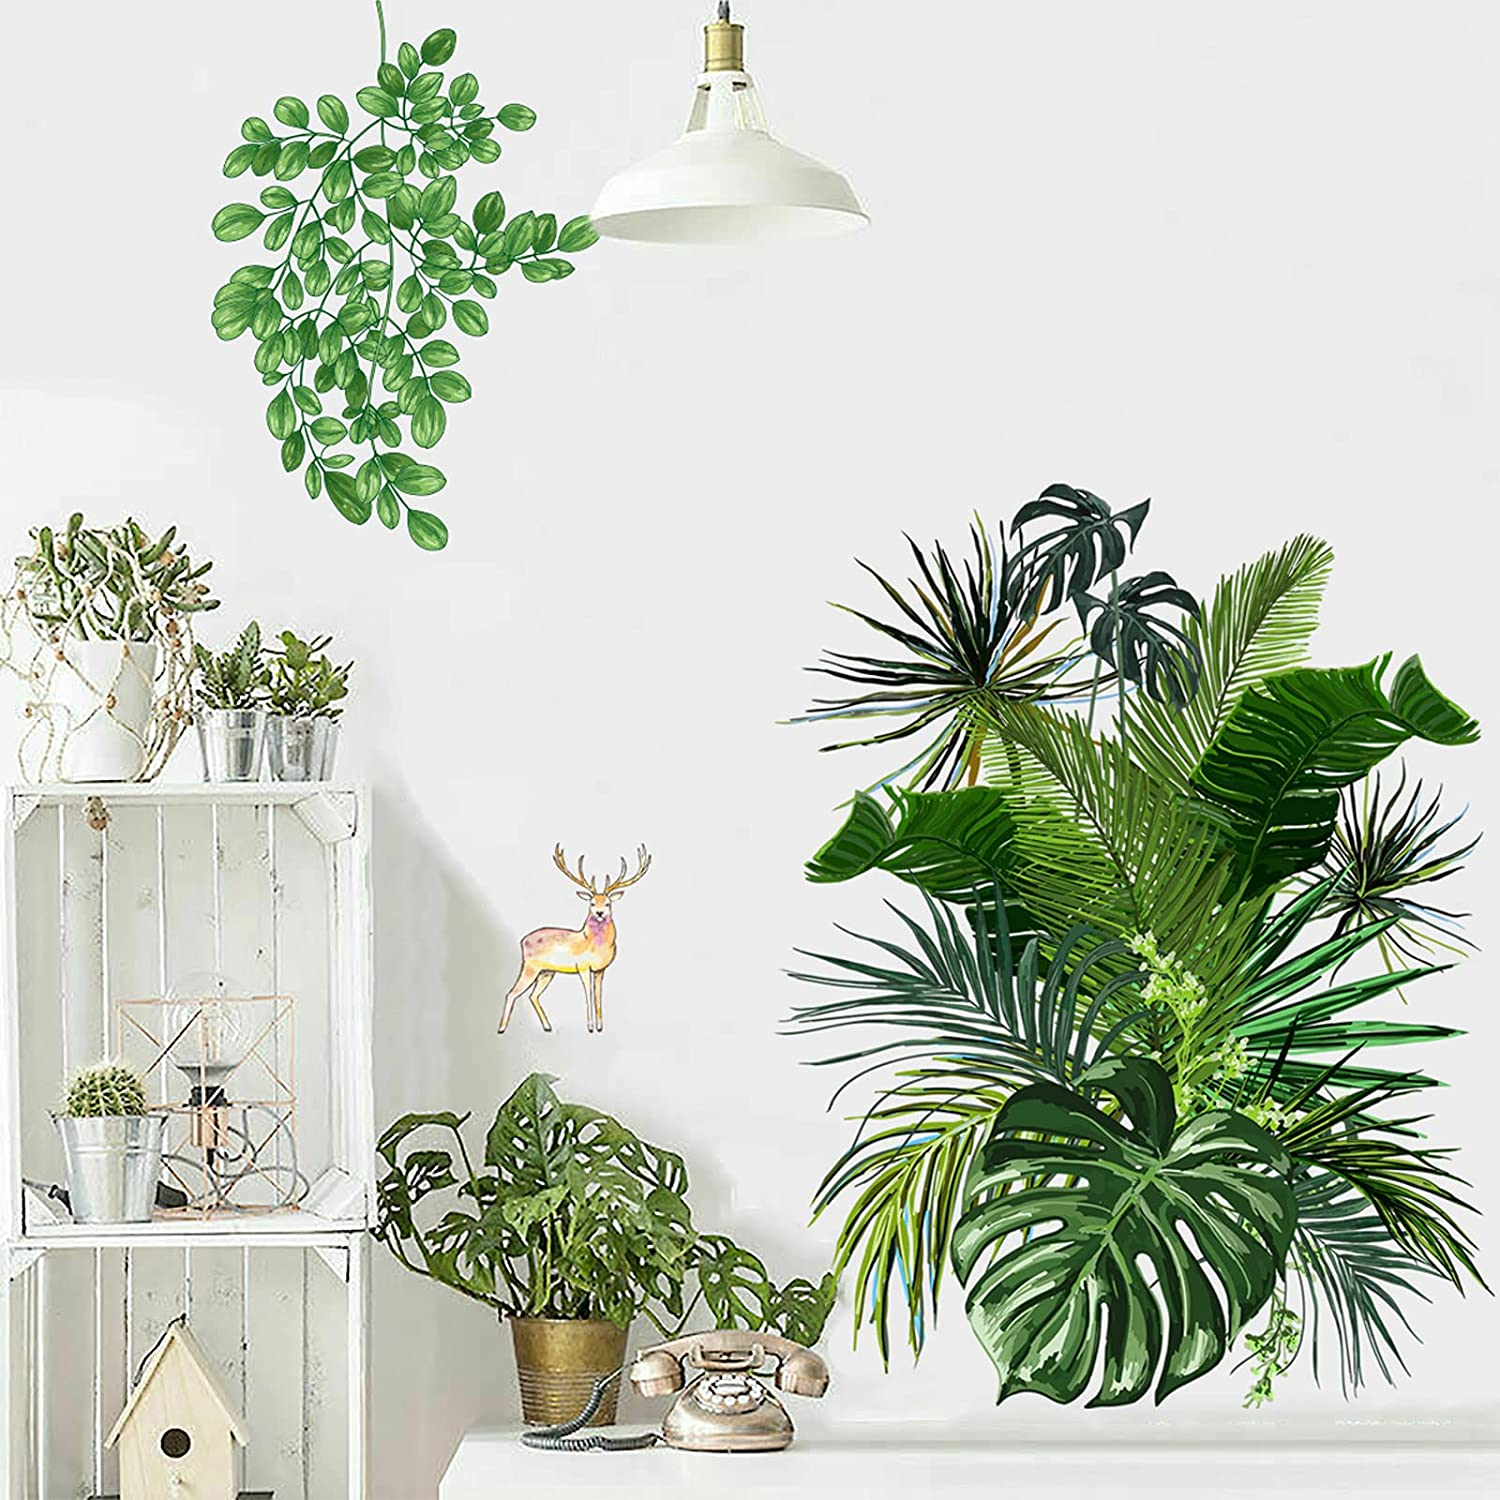 Green Plants Fresh Leaves Wall Decals, Monstera Leaf Tropical Plants with Sika Deer Wall Decals, Removable Hanging Tree Vine Wall Stickers, DIY Art Décor Murals Wallpaper for Bedroom, Nursery, TV Wall